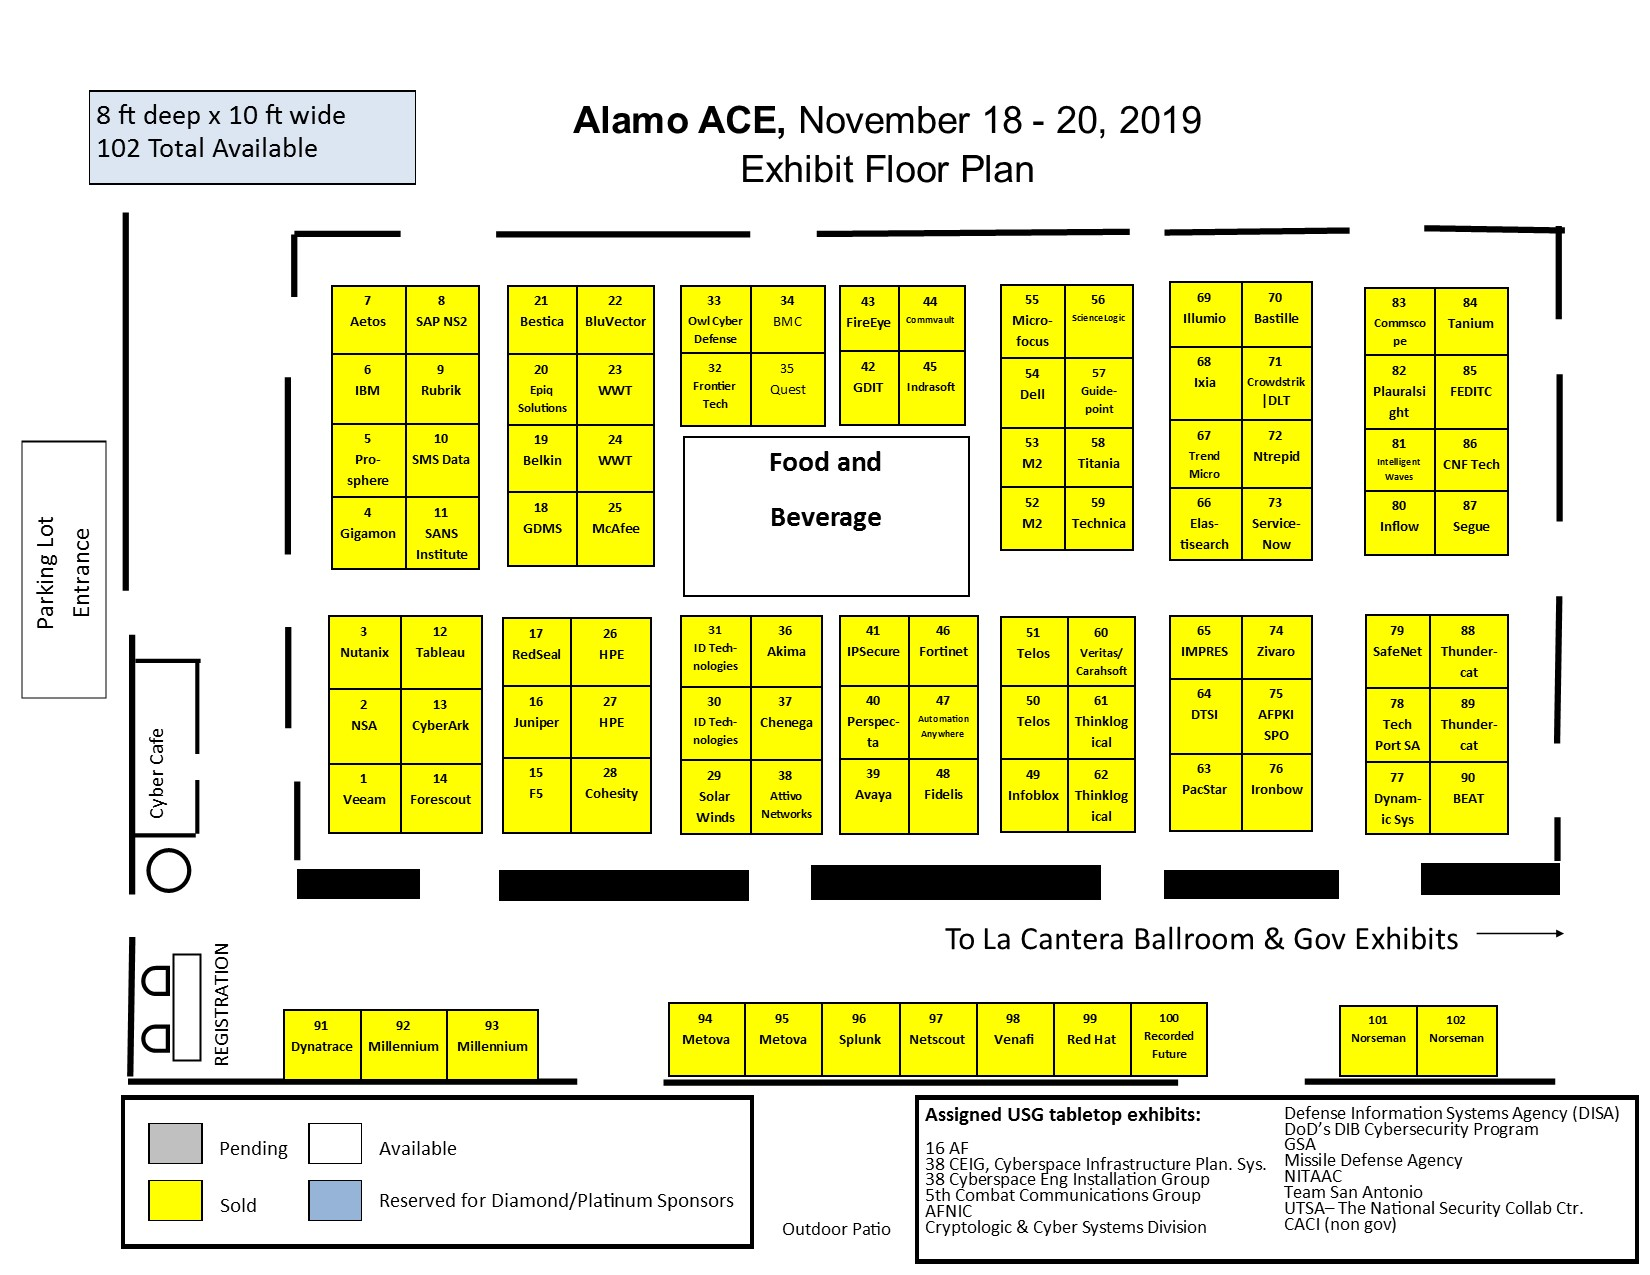 2019 Alamo ACE floorplan